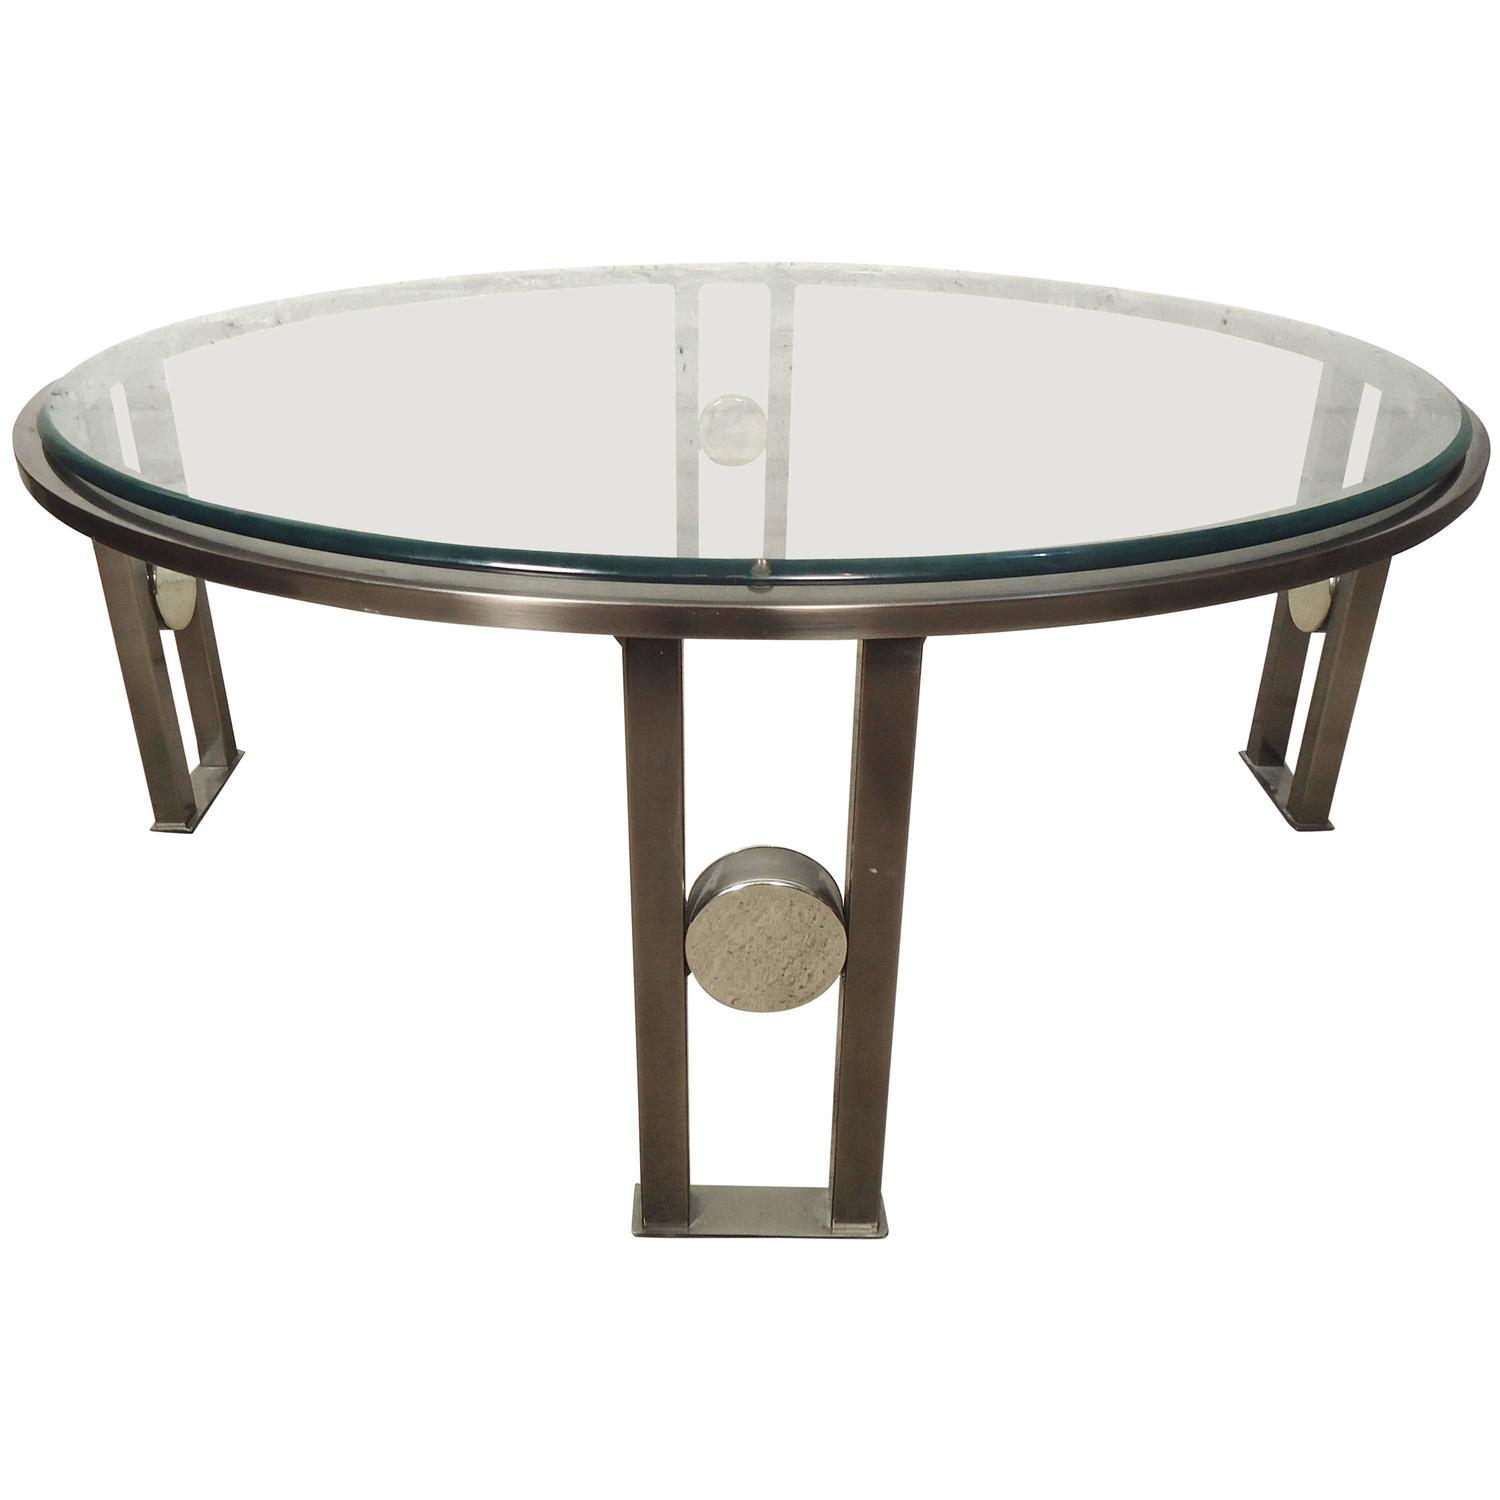 Round glass top coffee table at 1stdibs for Glass top circle coffee table